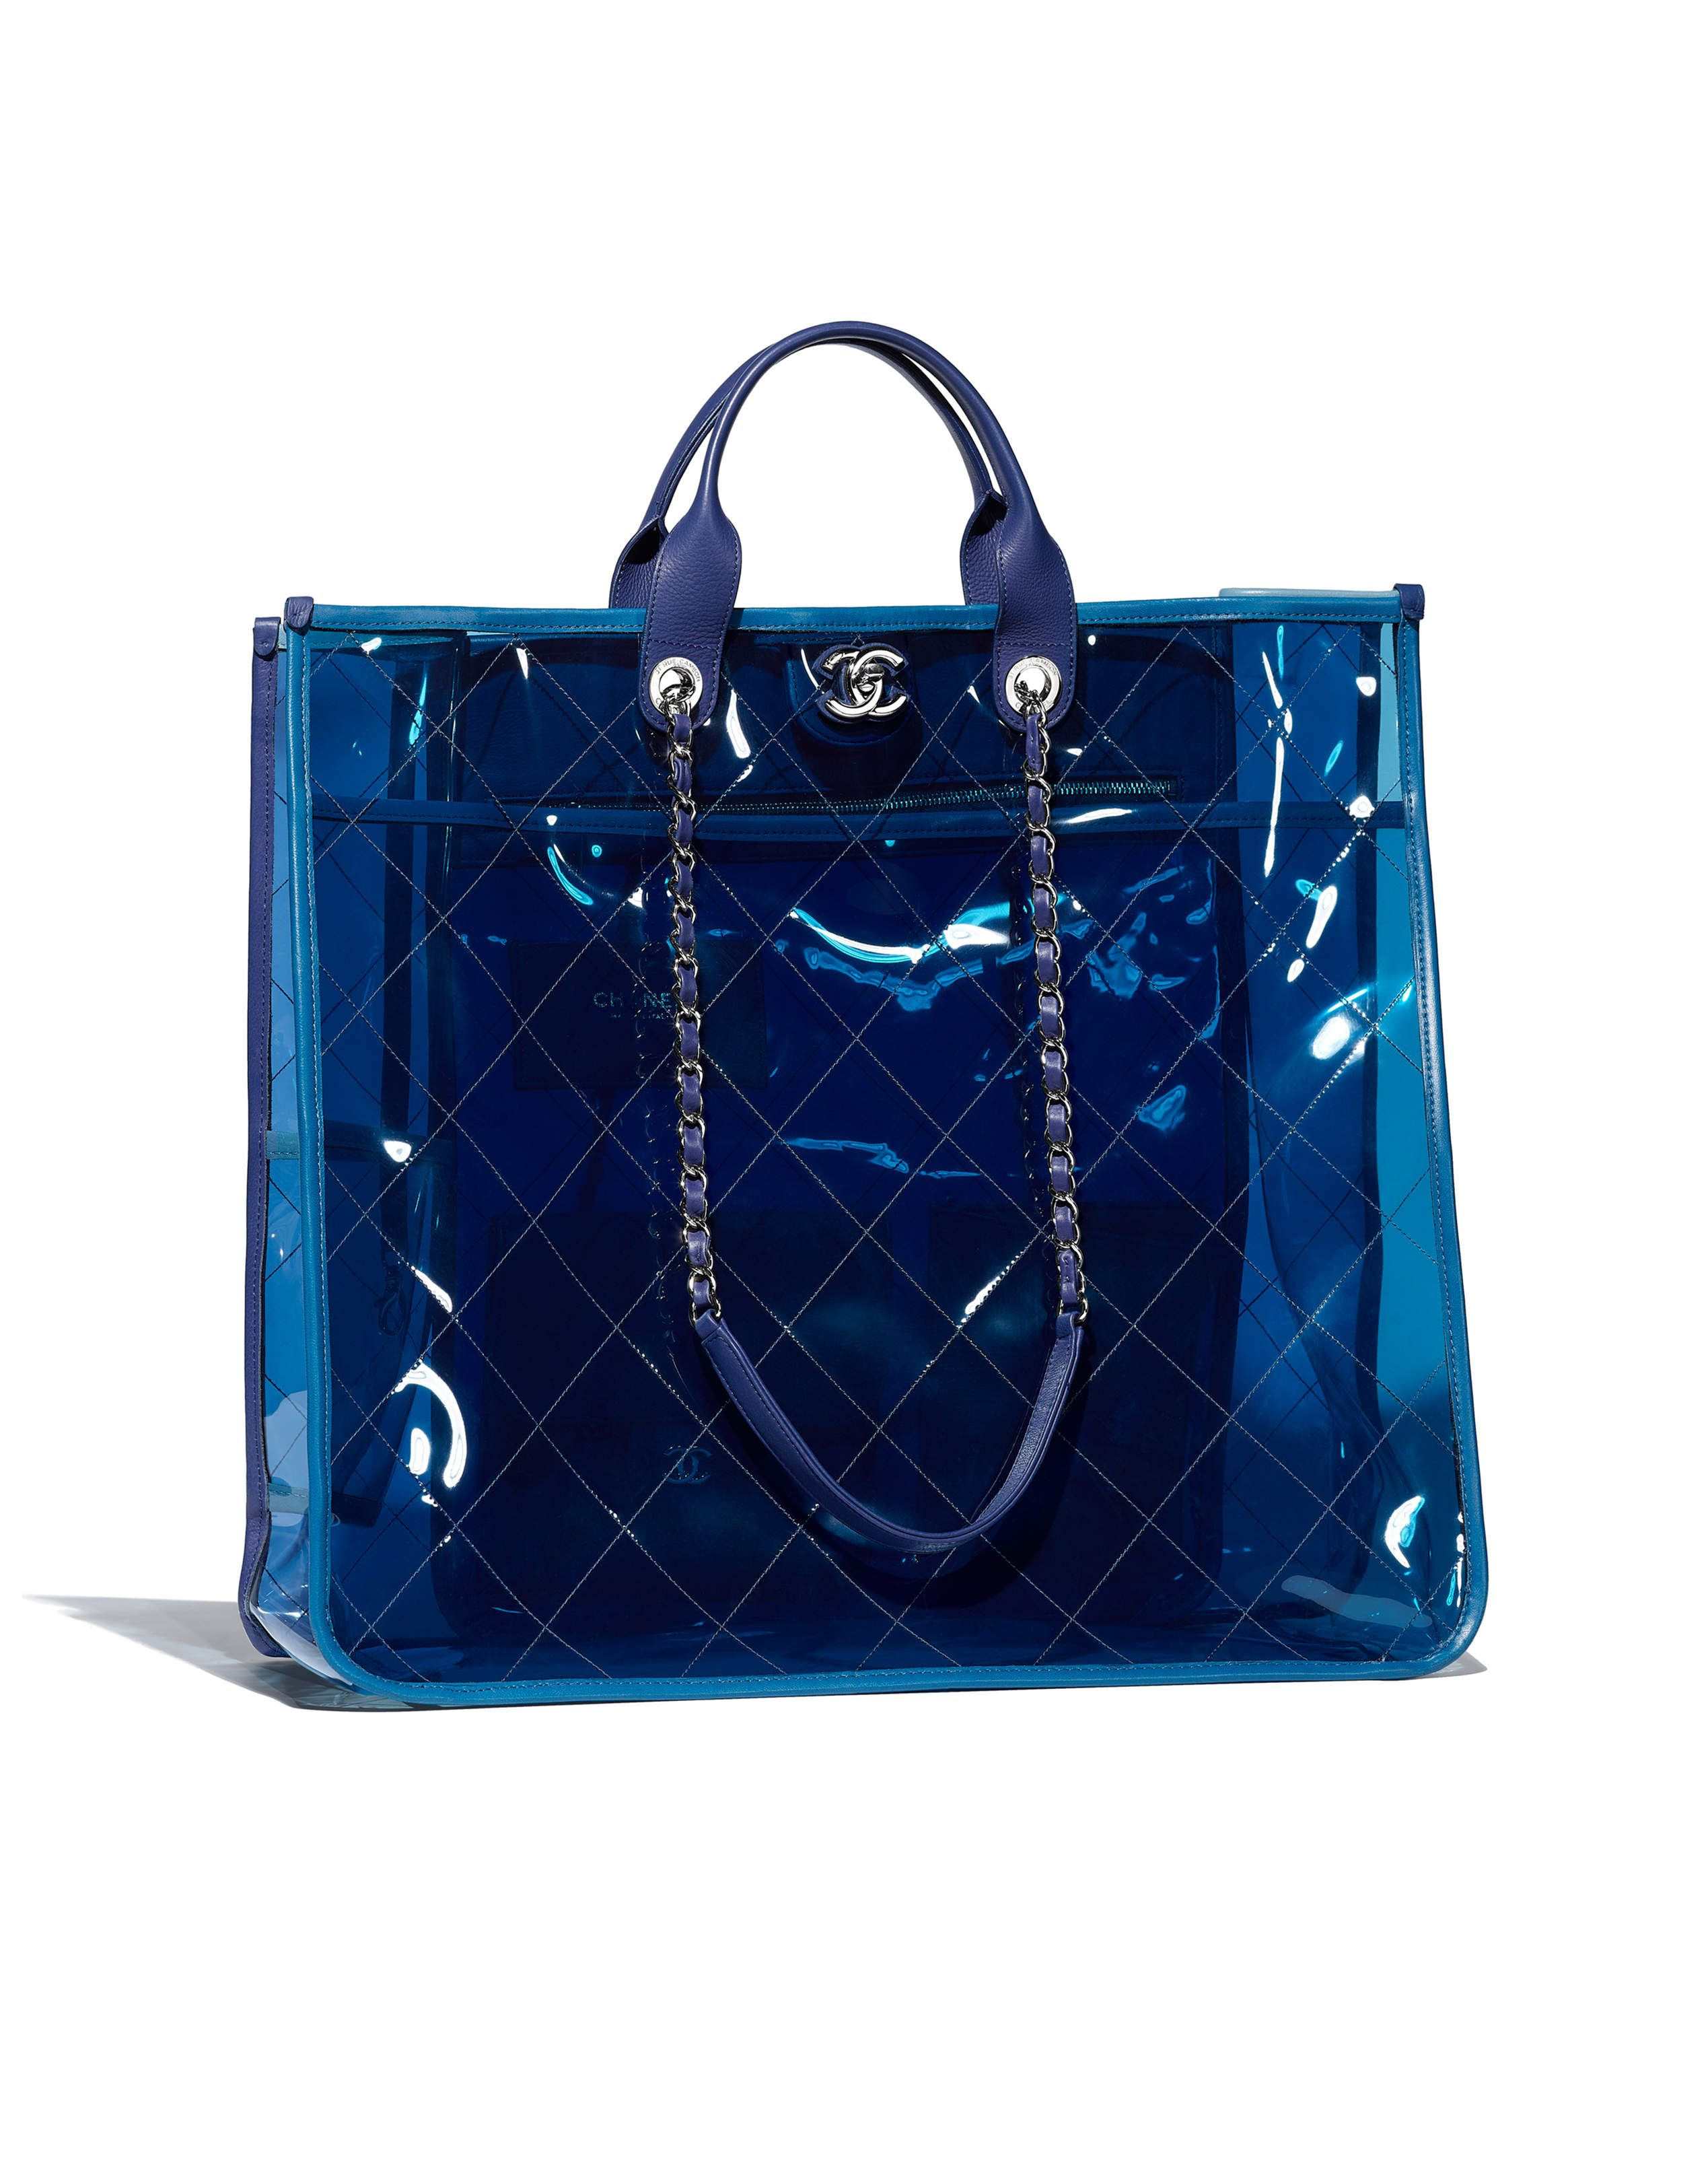 ffb154ff72bc Chanel - SS2018 | Blue & dark blue PVC large shopping bag | cap in ...